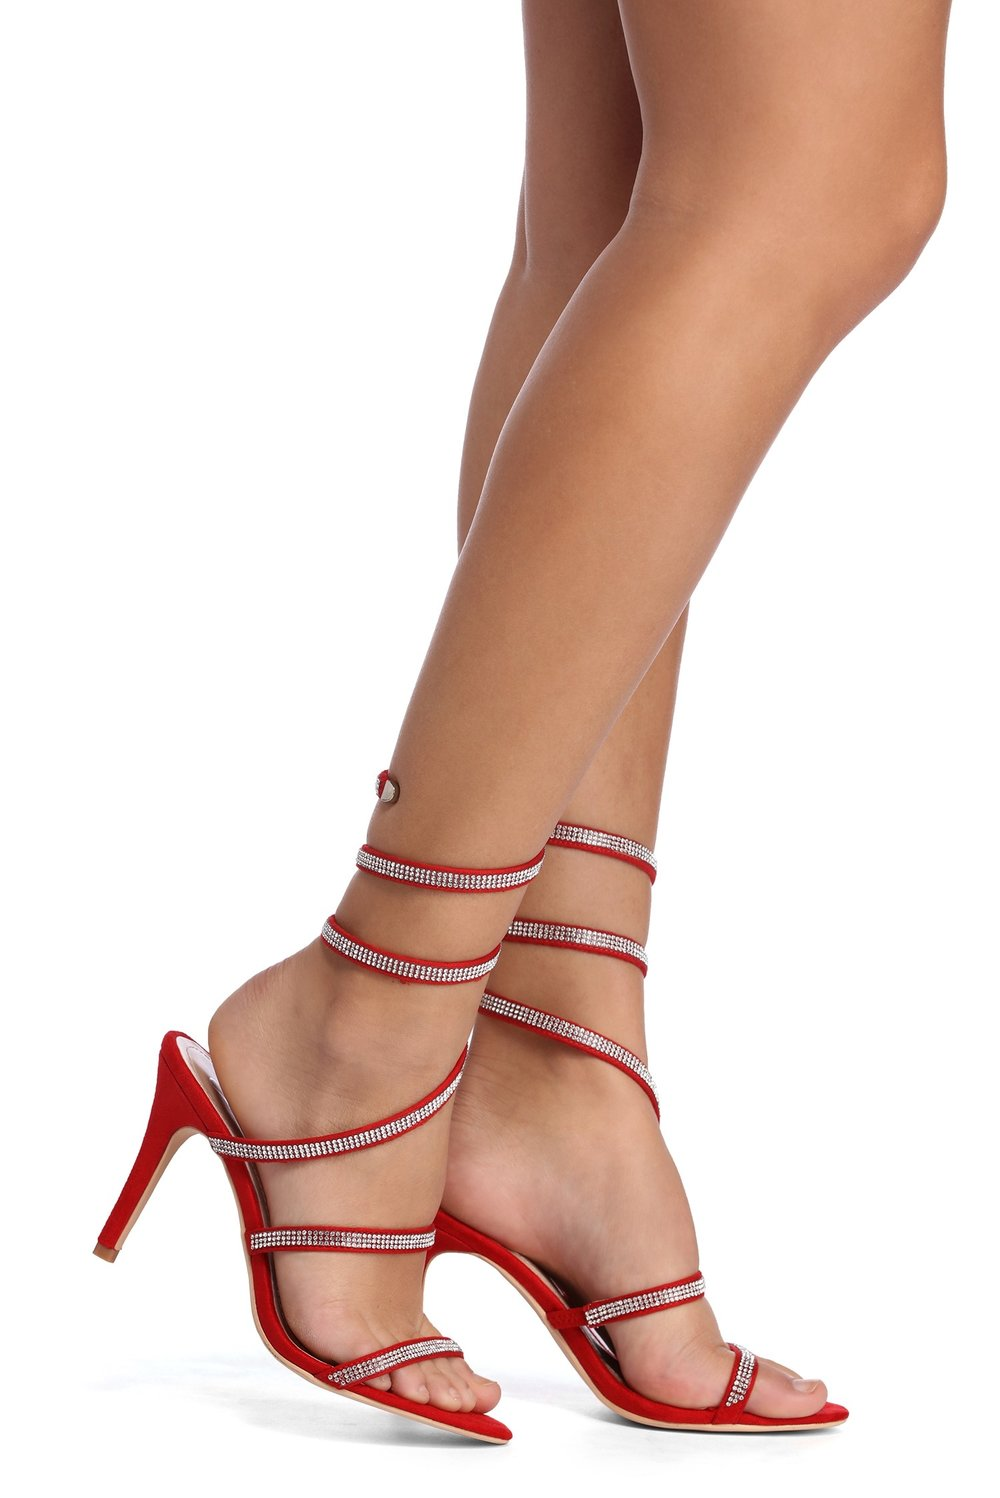 RED SPRUNG ON YOU RHINESTONE HEELS.jpg